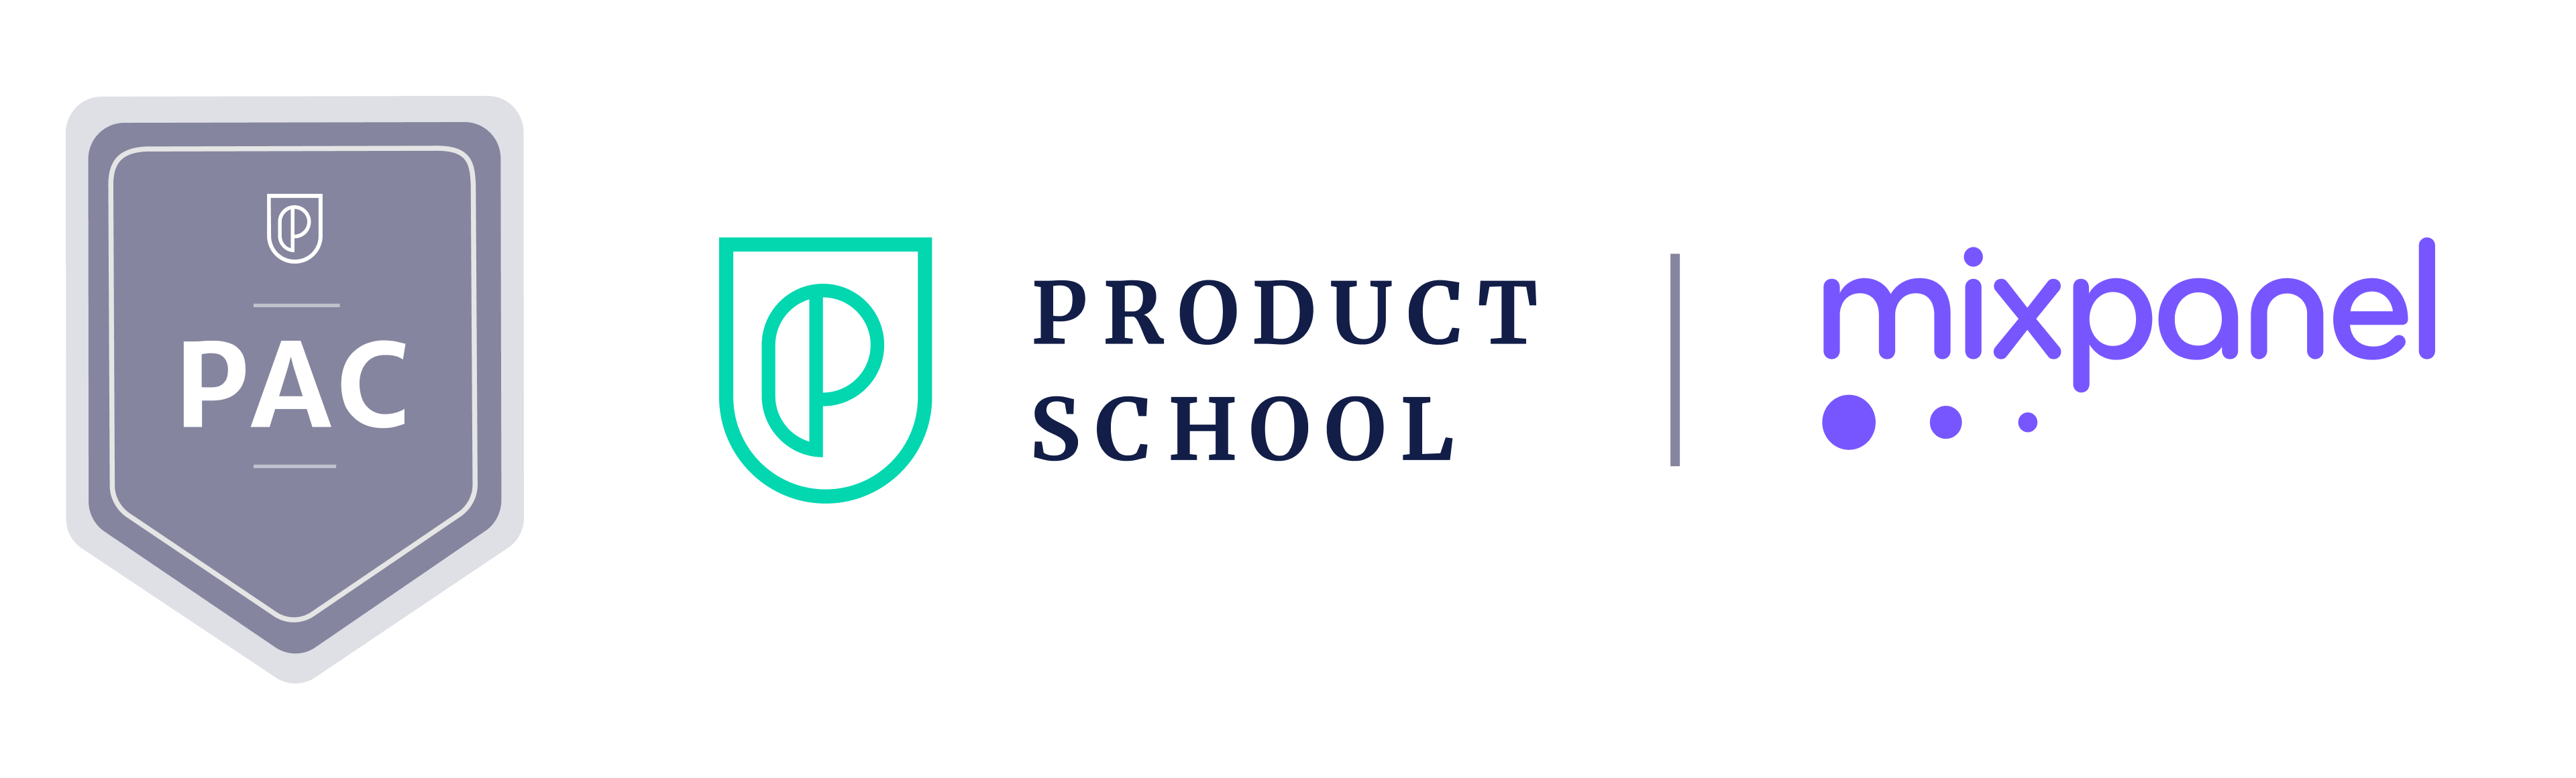 Product Analytics Certification PAC™   Product School